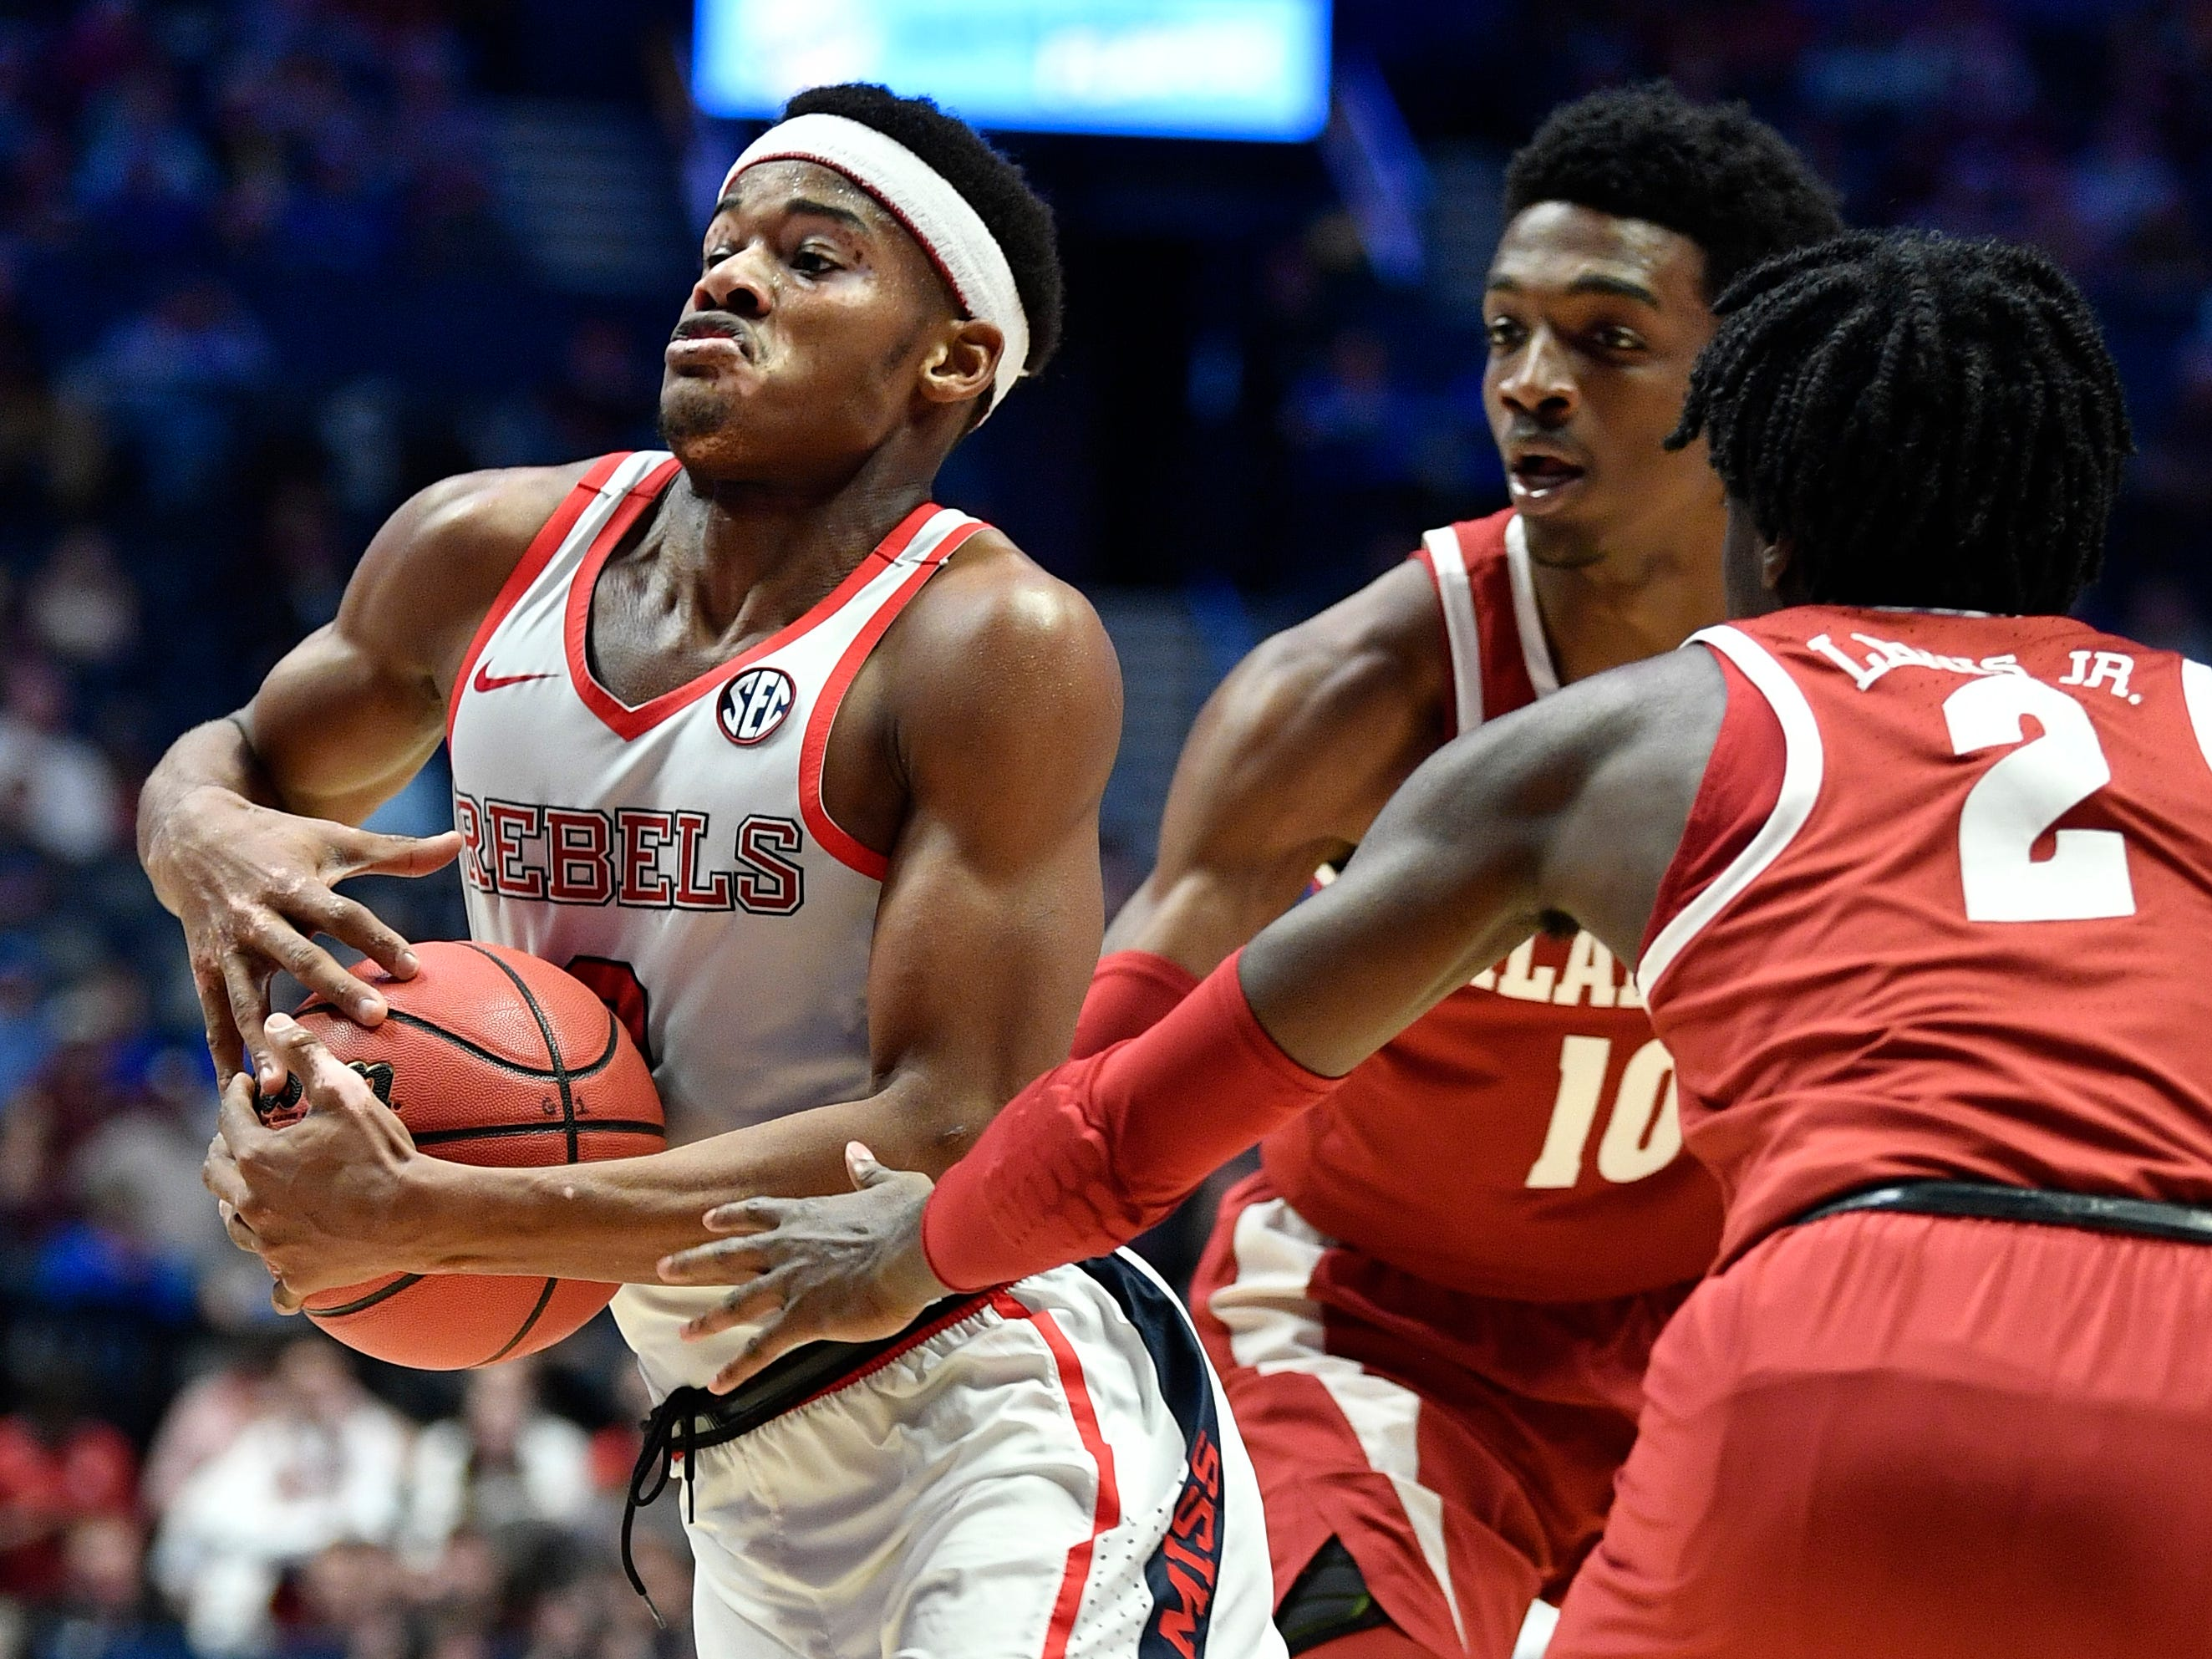 Ole Miss guard Devontae Shuler (2) takes it to the hoop defended by Alabama guards Herbert Jones (10) and Kira Lewis Jr. (2) during the second half of the SEC Men's Basketball Tournament game at Bridgestone Arena in Nashville, Tenn., Thursday, March 14, 2019.